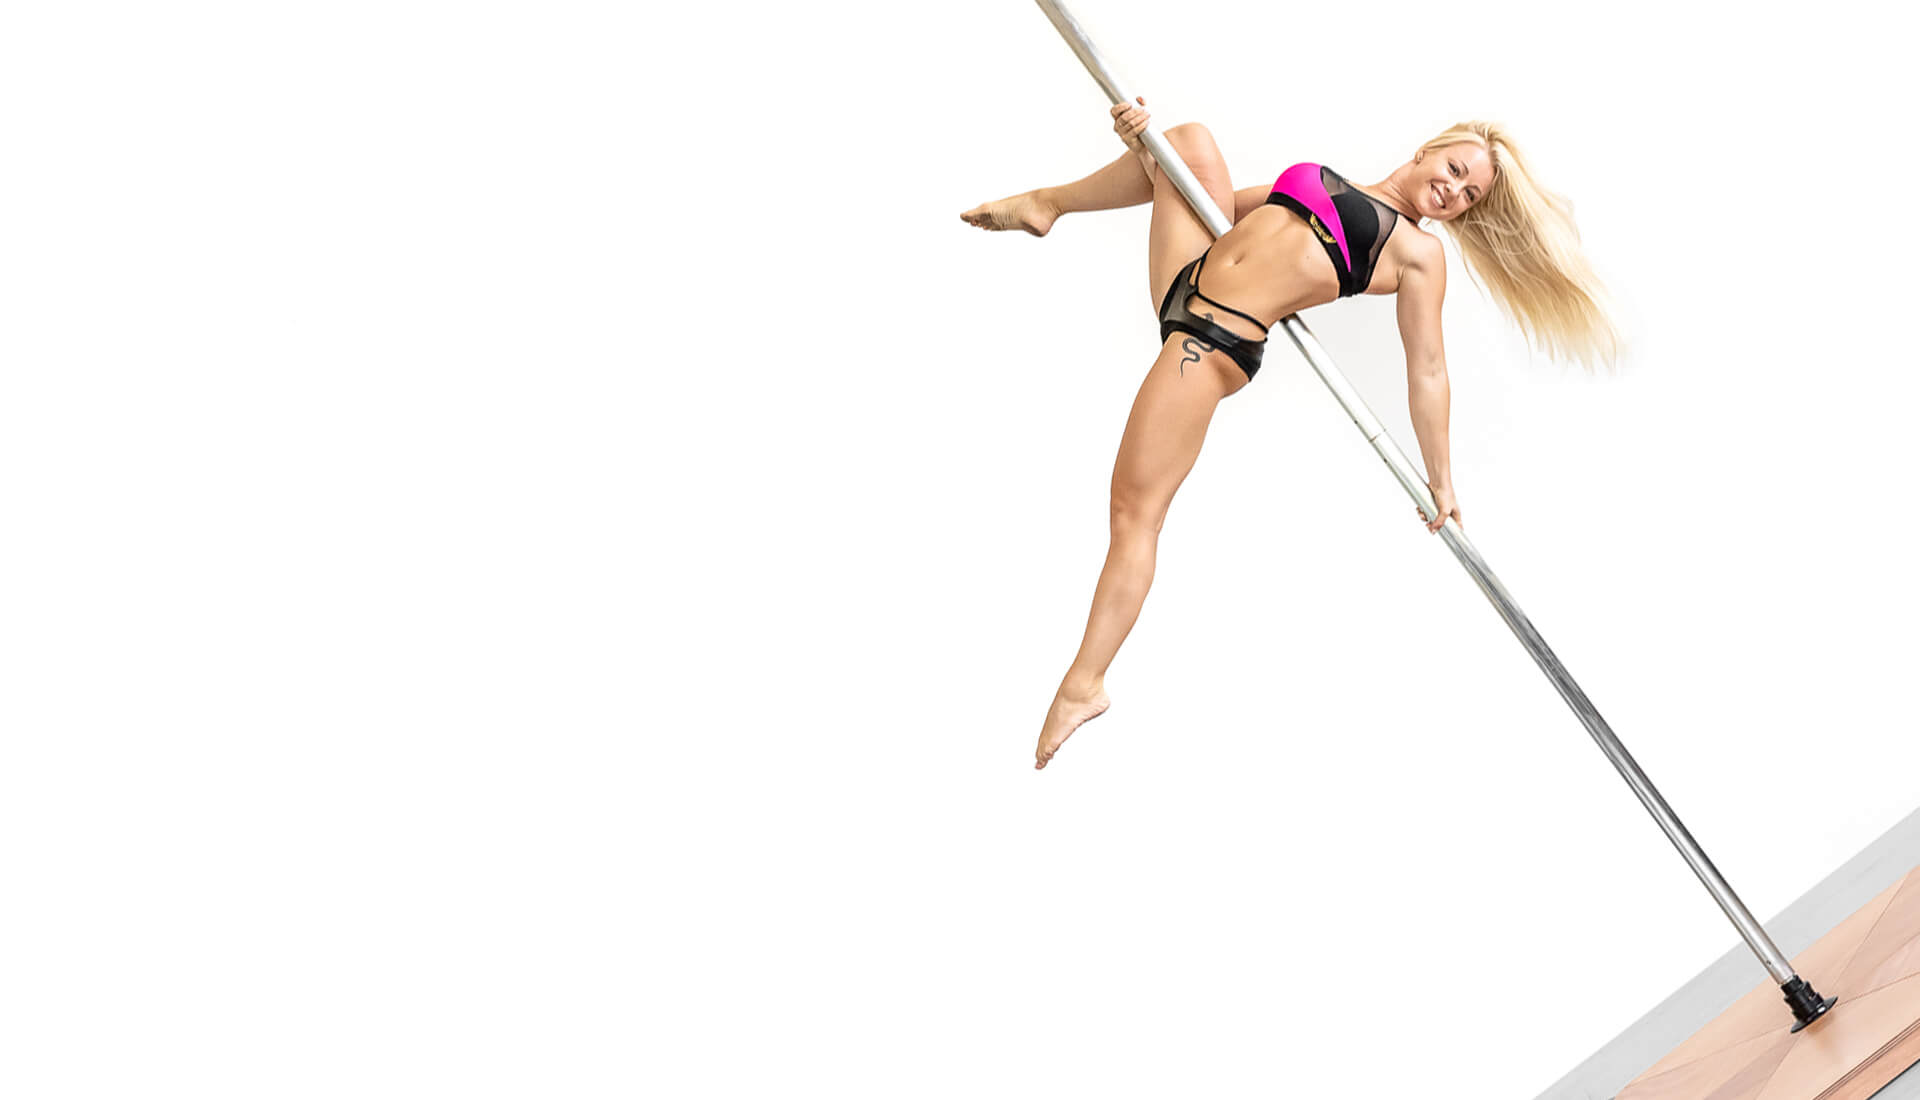 Portable Pole for Pole Dance inox